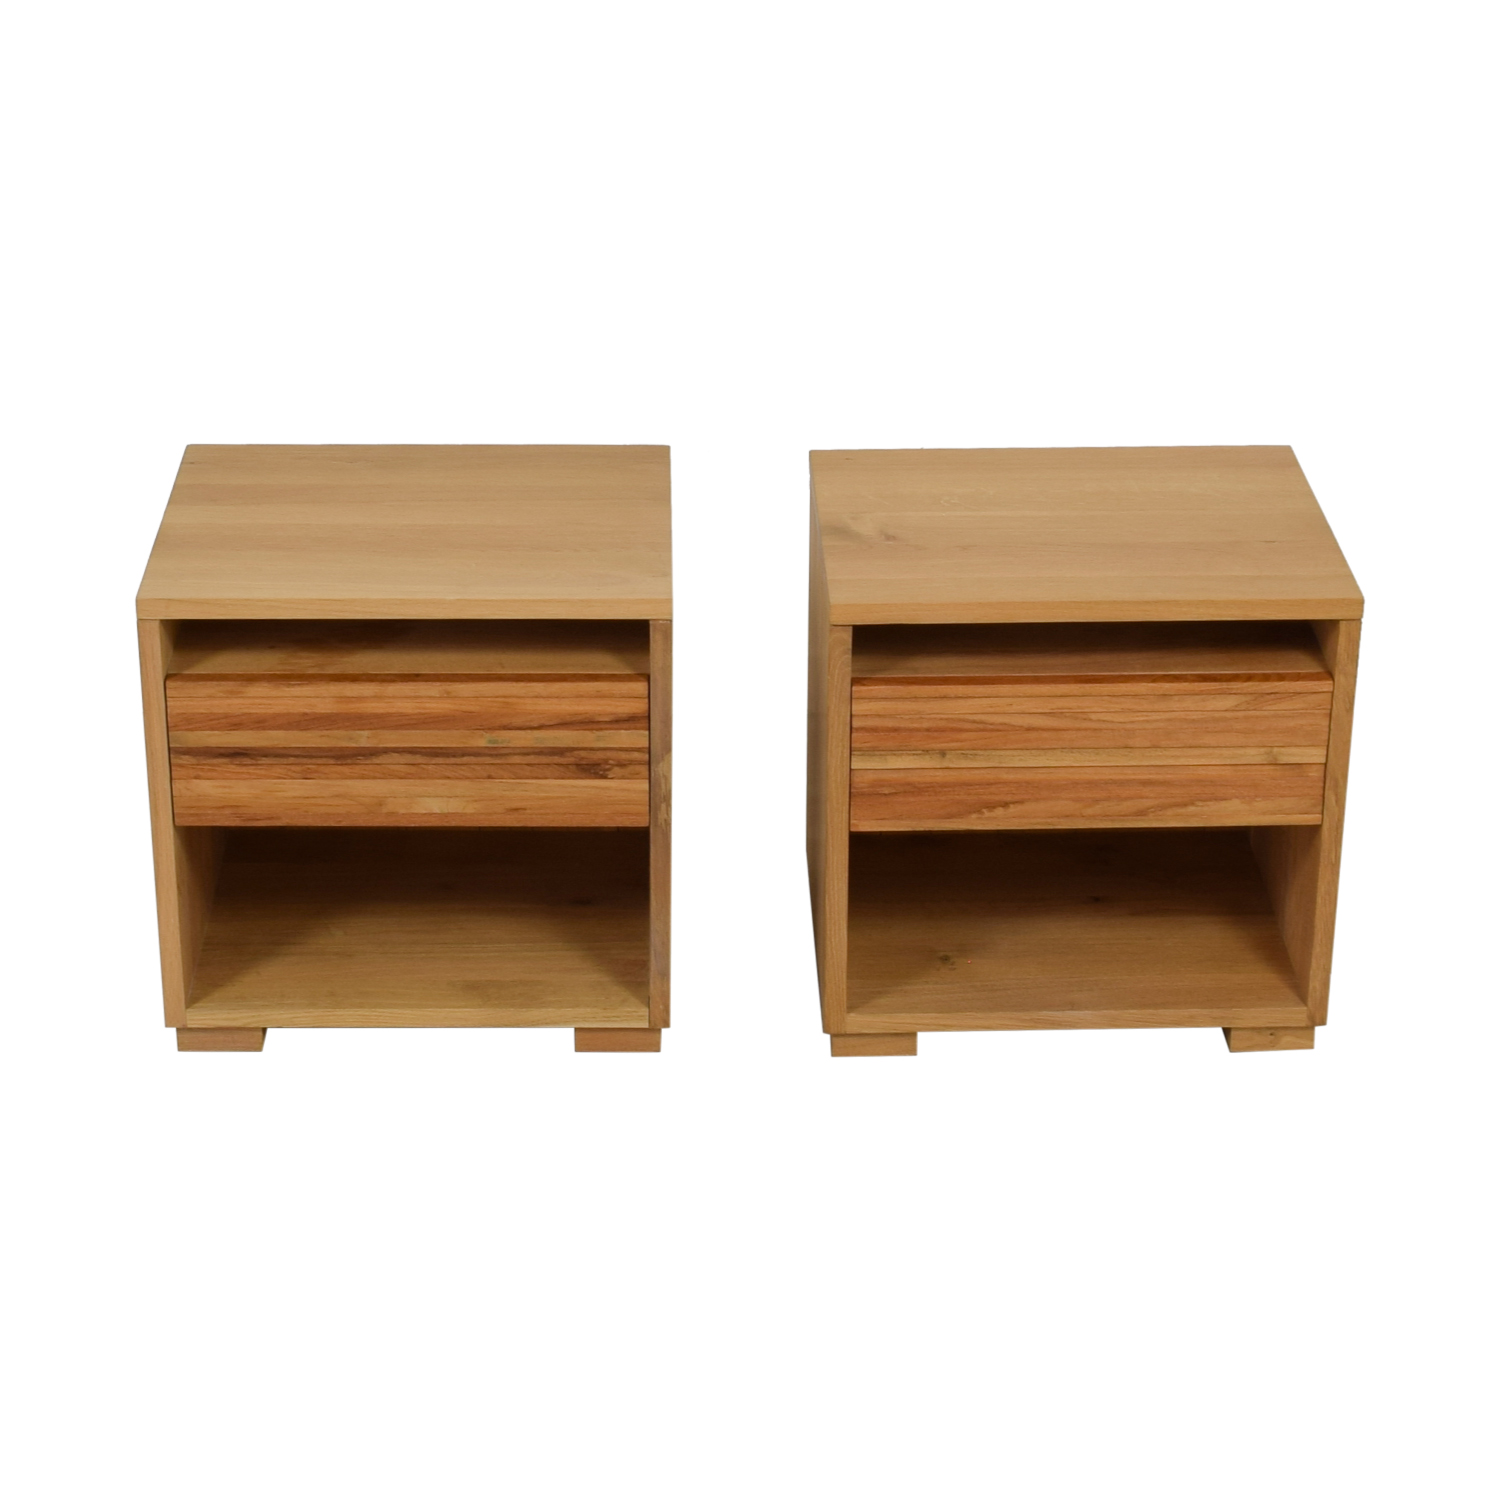 Crate & Barrel Sierra Single Drawer Nightstands / Sofas